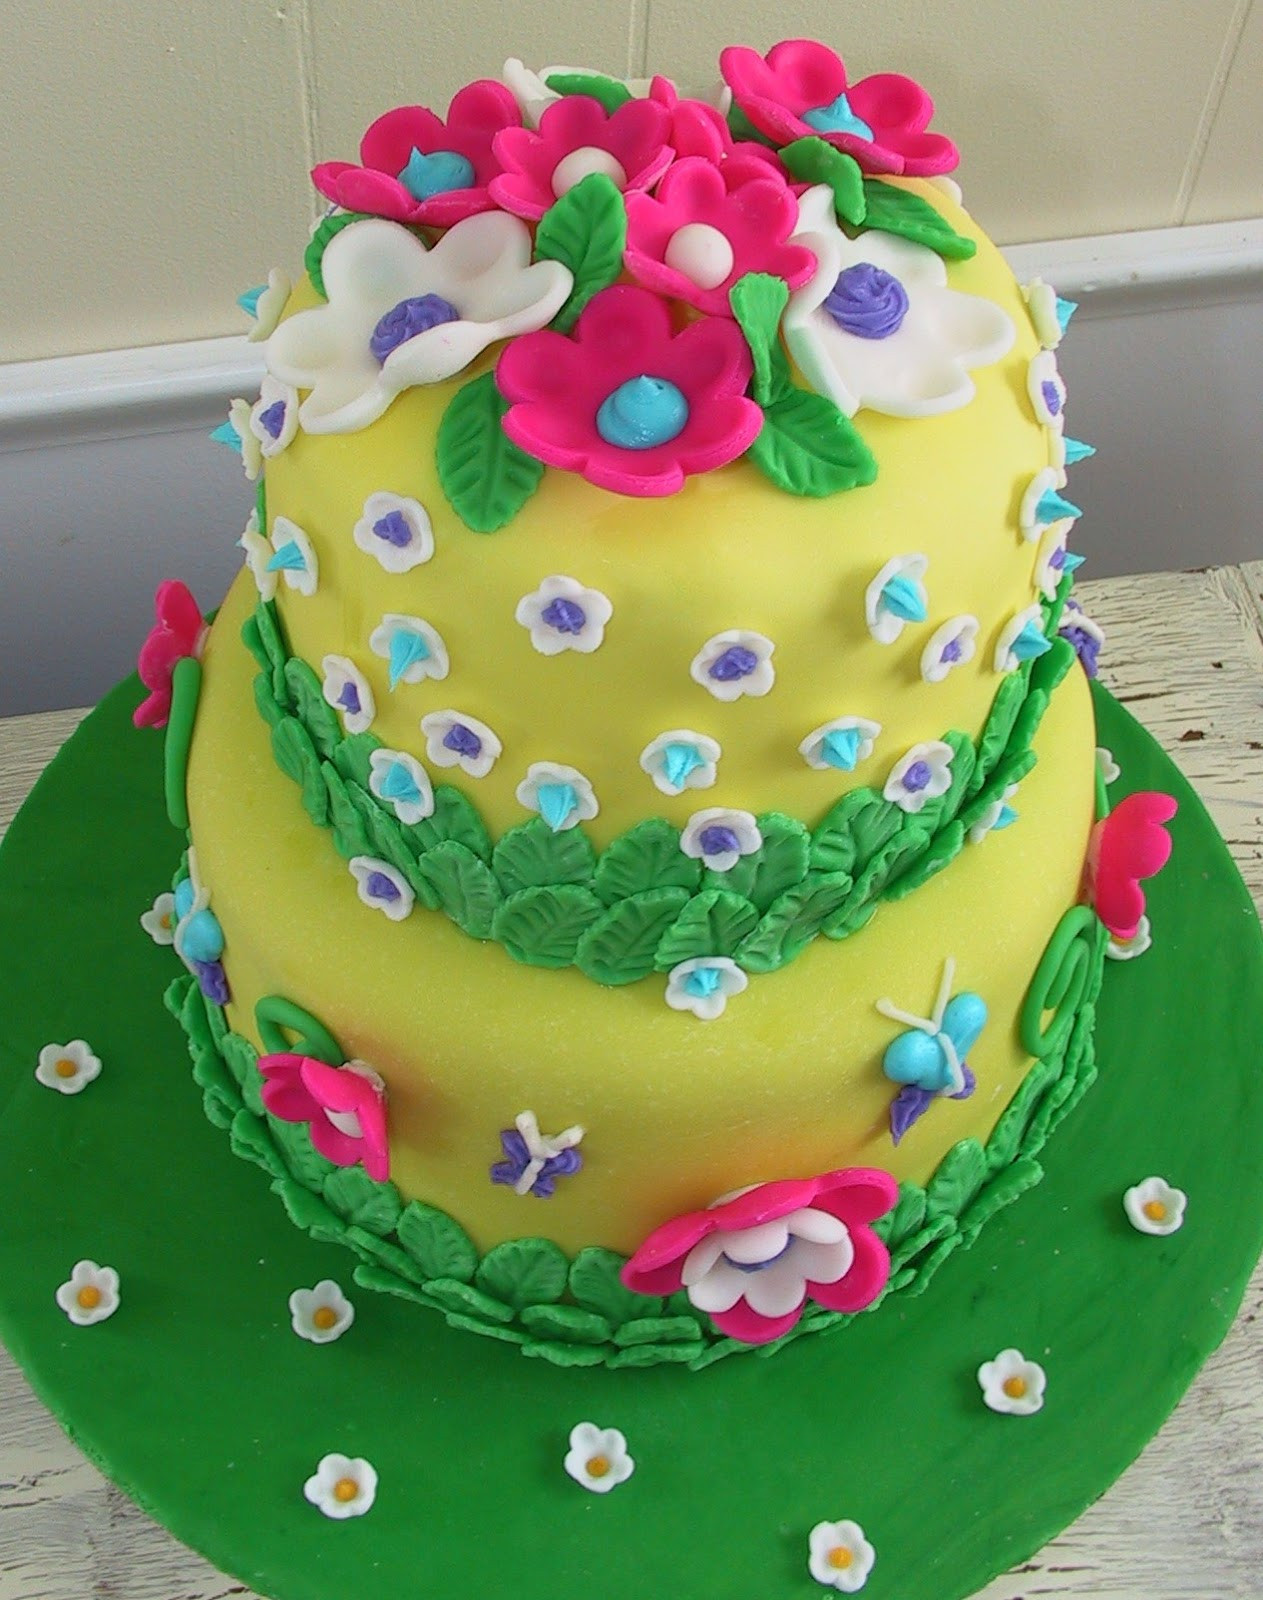 Best ideas about Birthday Cake Flowers . Save or Pin Delicious Cake Blogger Flower Birthday Cake Ideas Now.